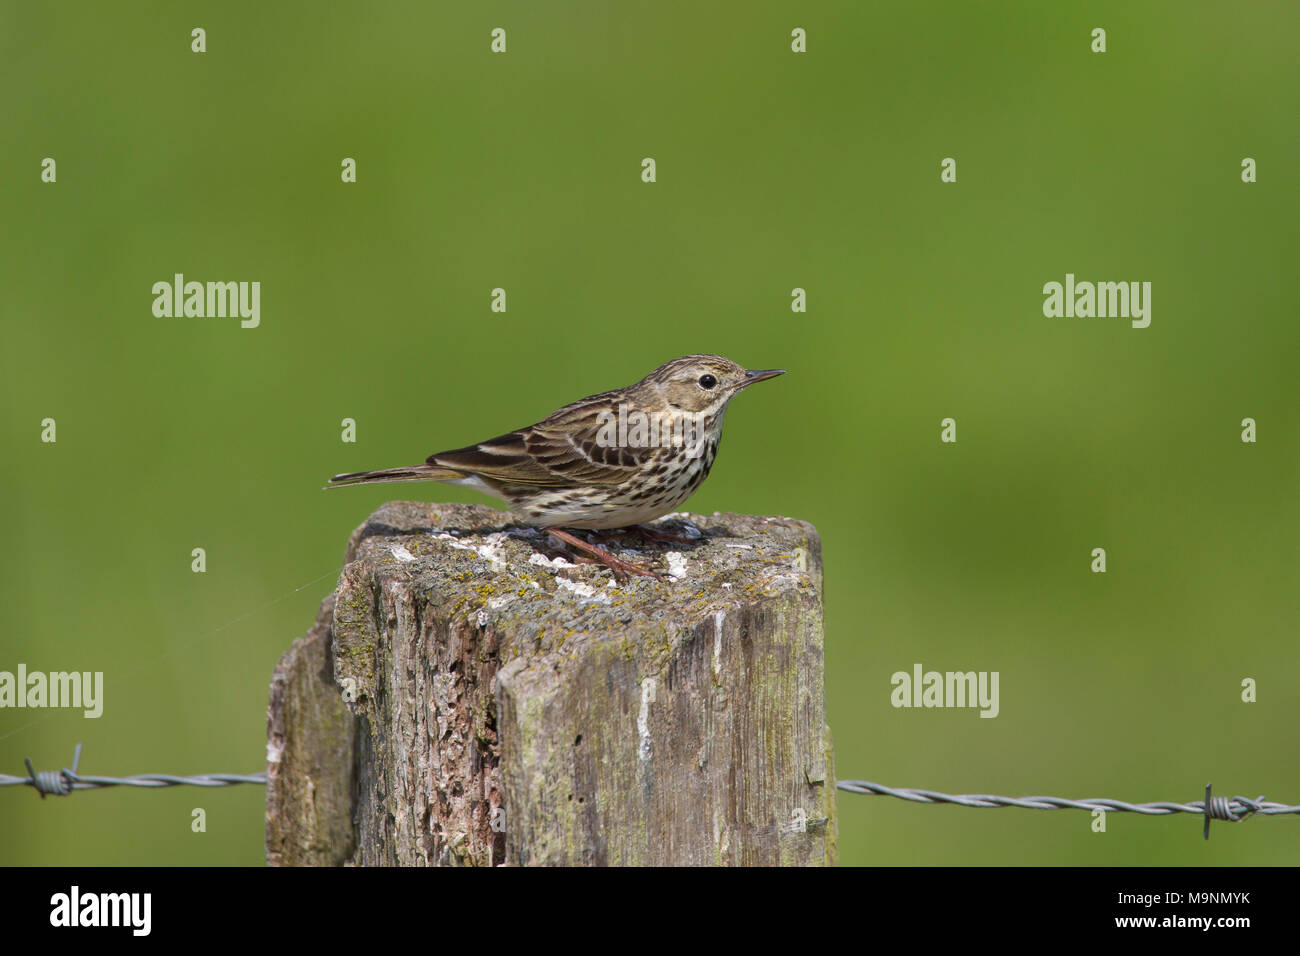 Meadow pipit (Anthus pratensis) perched on old wooden fence post along grassland - Stock Image